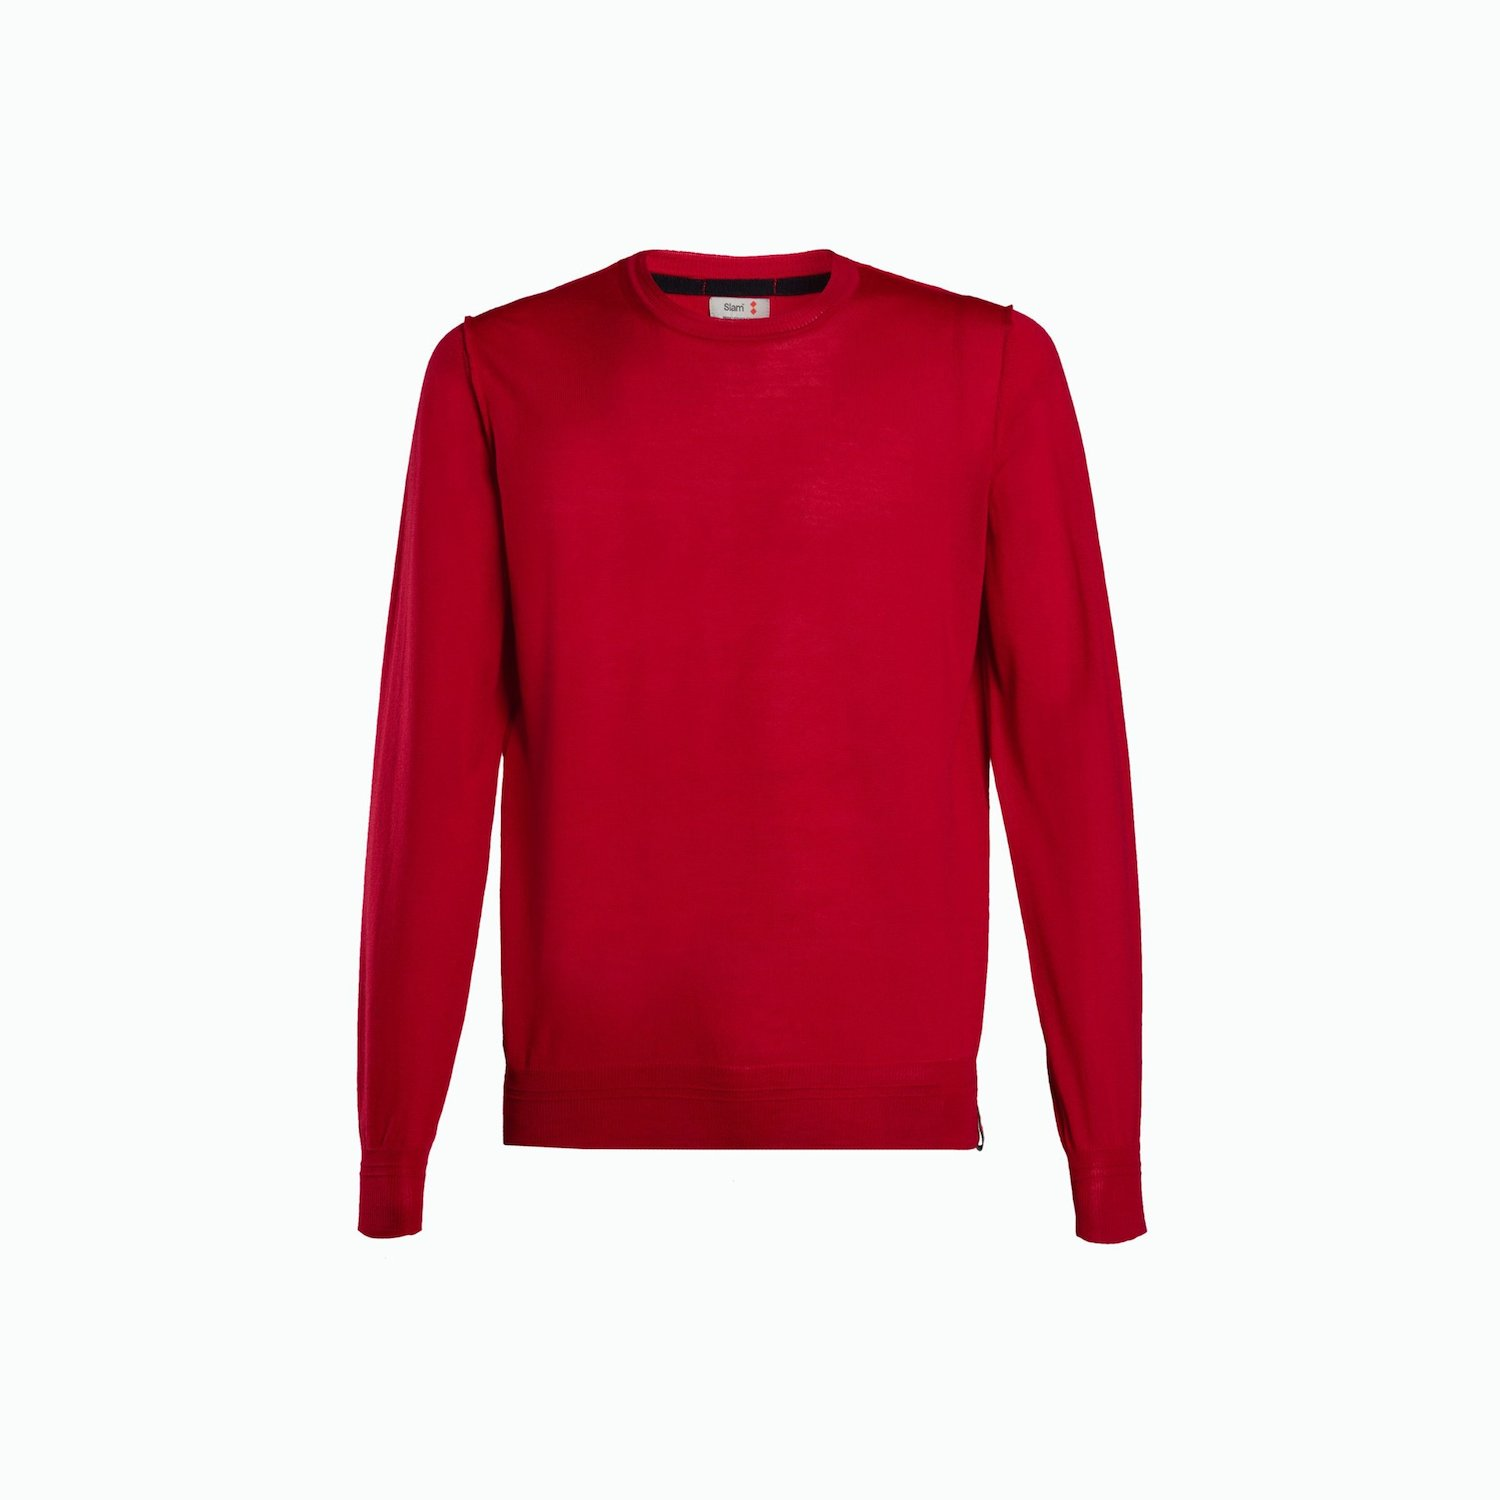 Jumper A180 - Rojo Chili